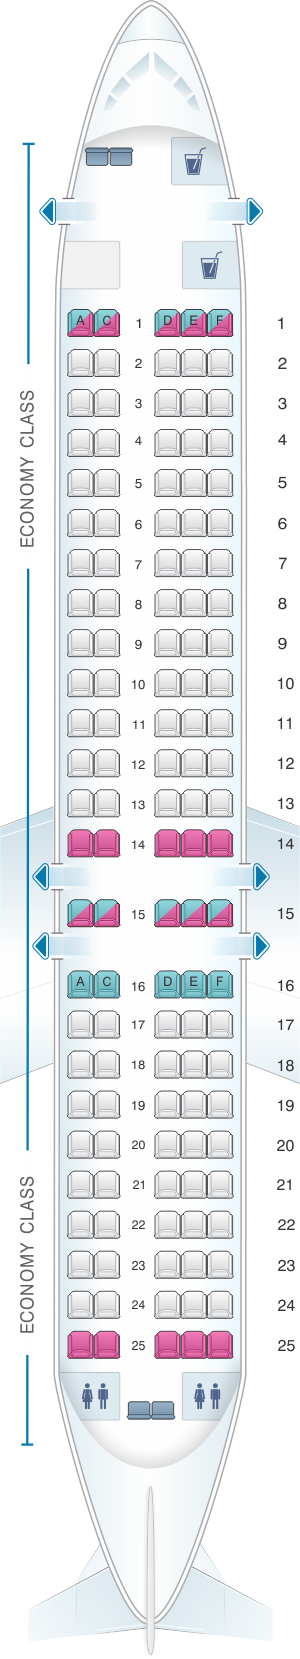 Seat map for Qantas Airways Boeing B717 200 125PAX